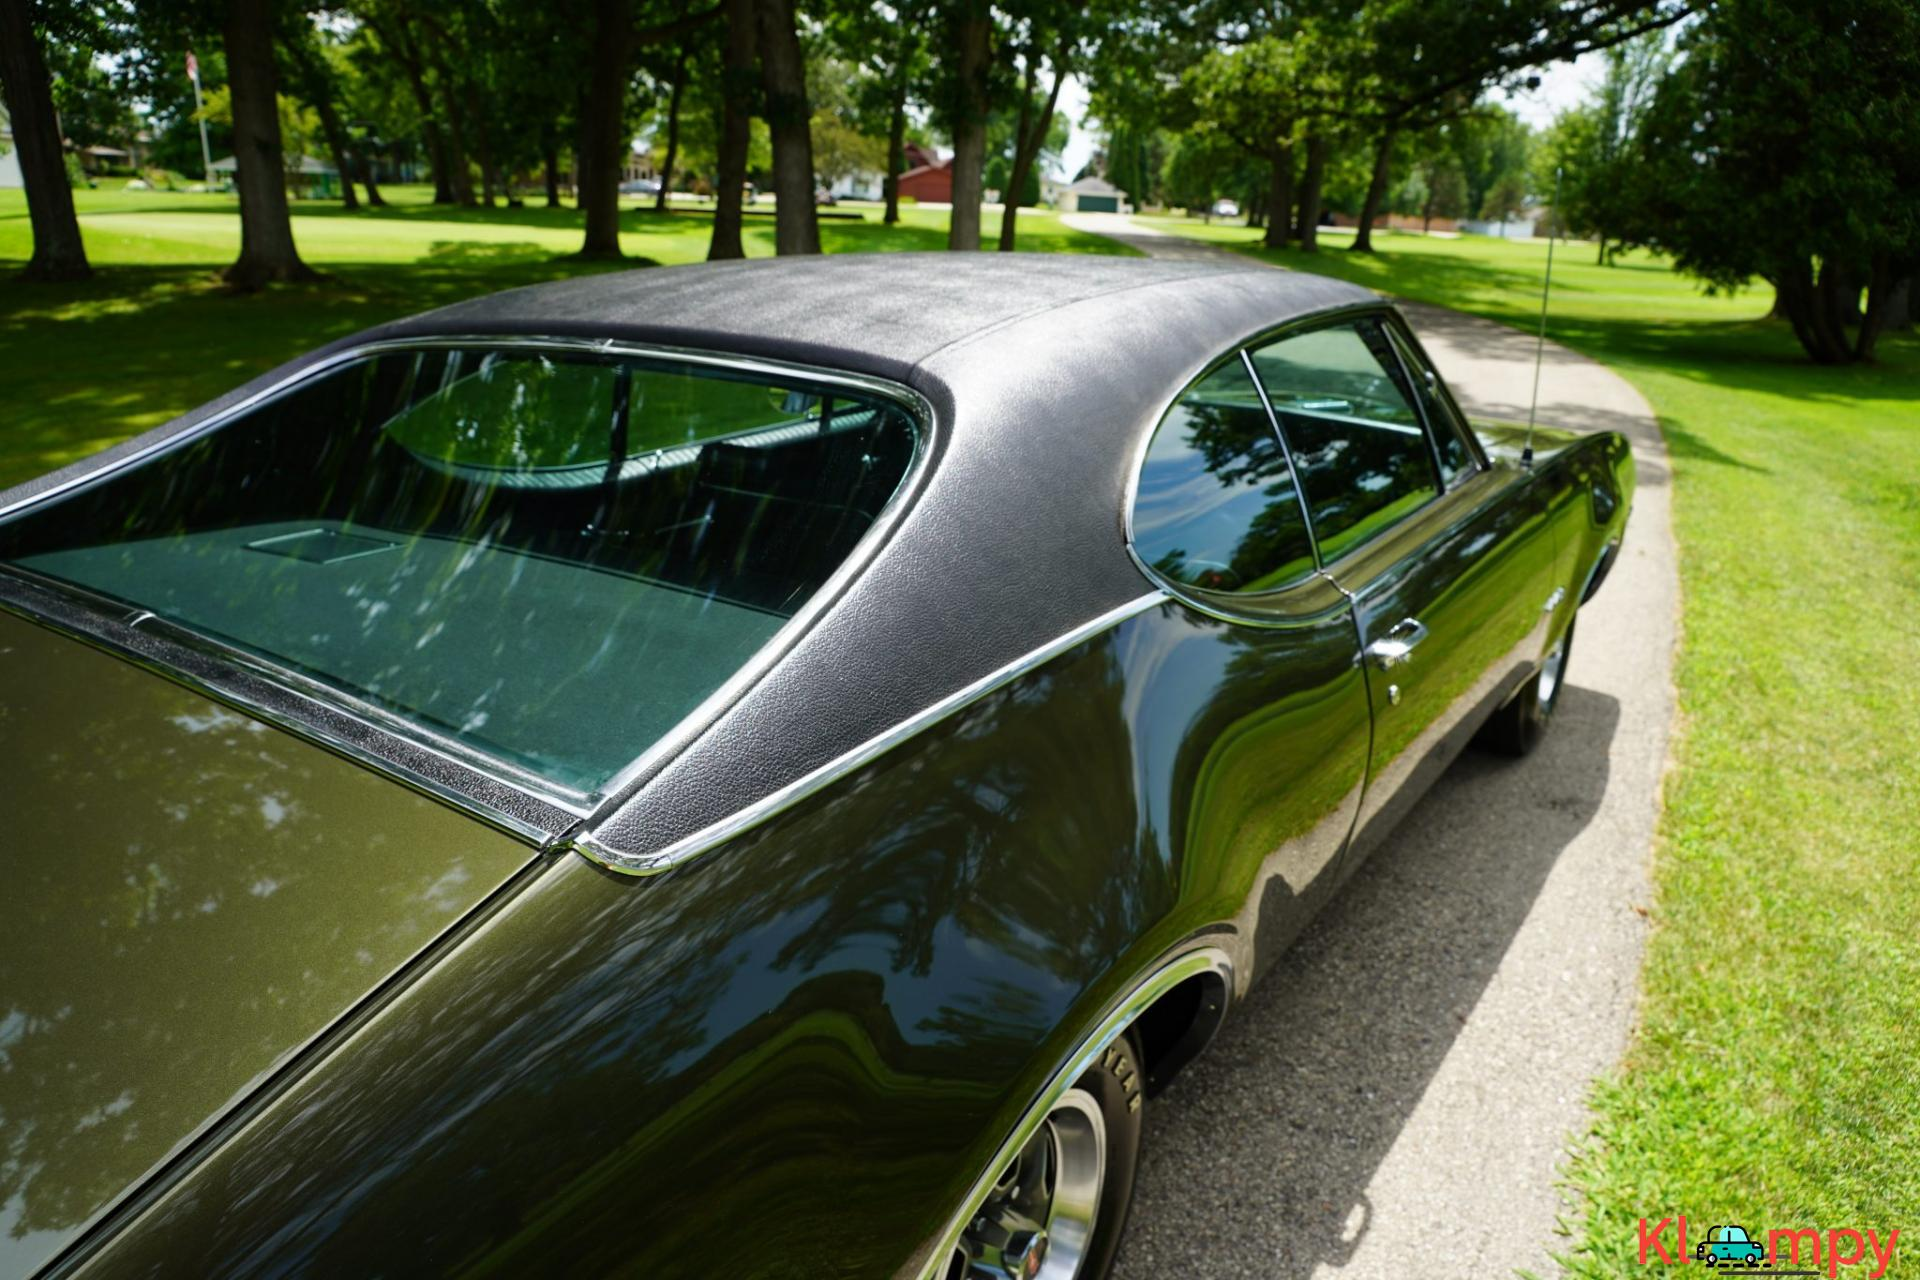 1968 Oldsmobile 442 Holiday Coupe Jade Gold - 12/28